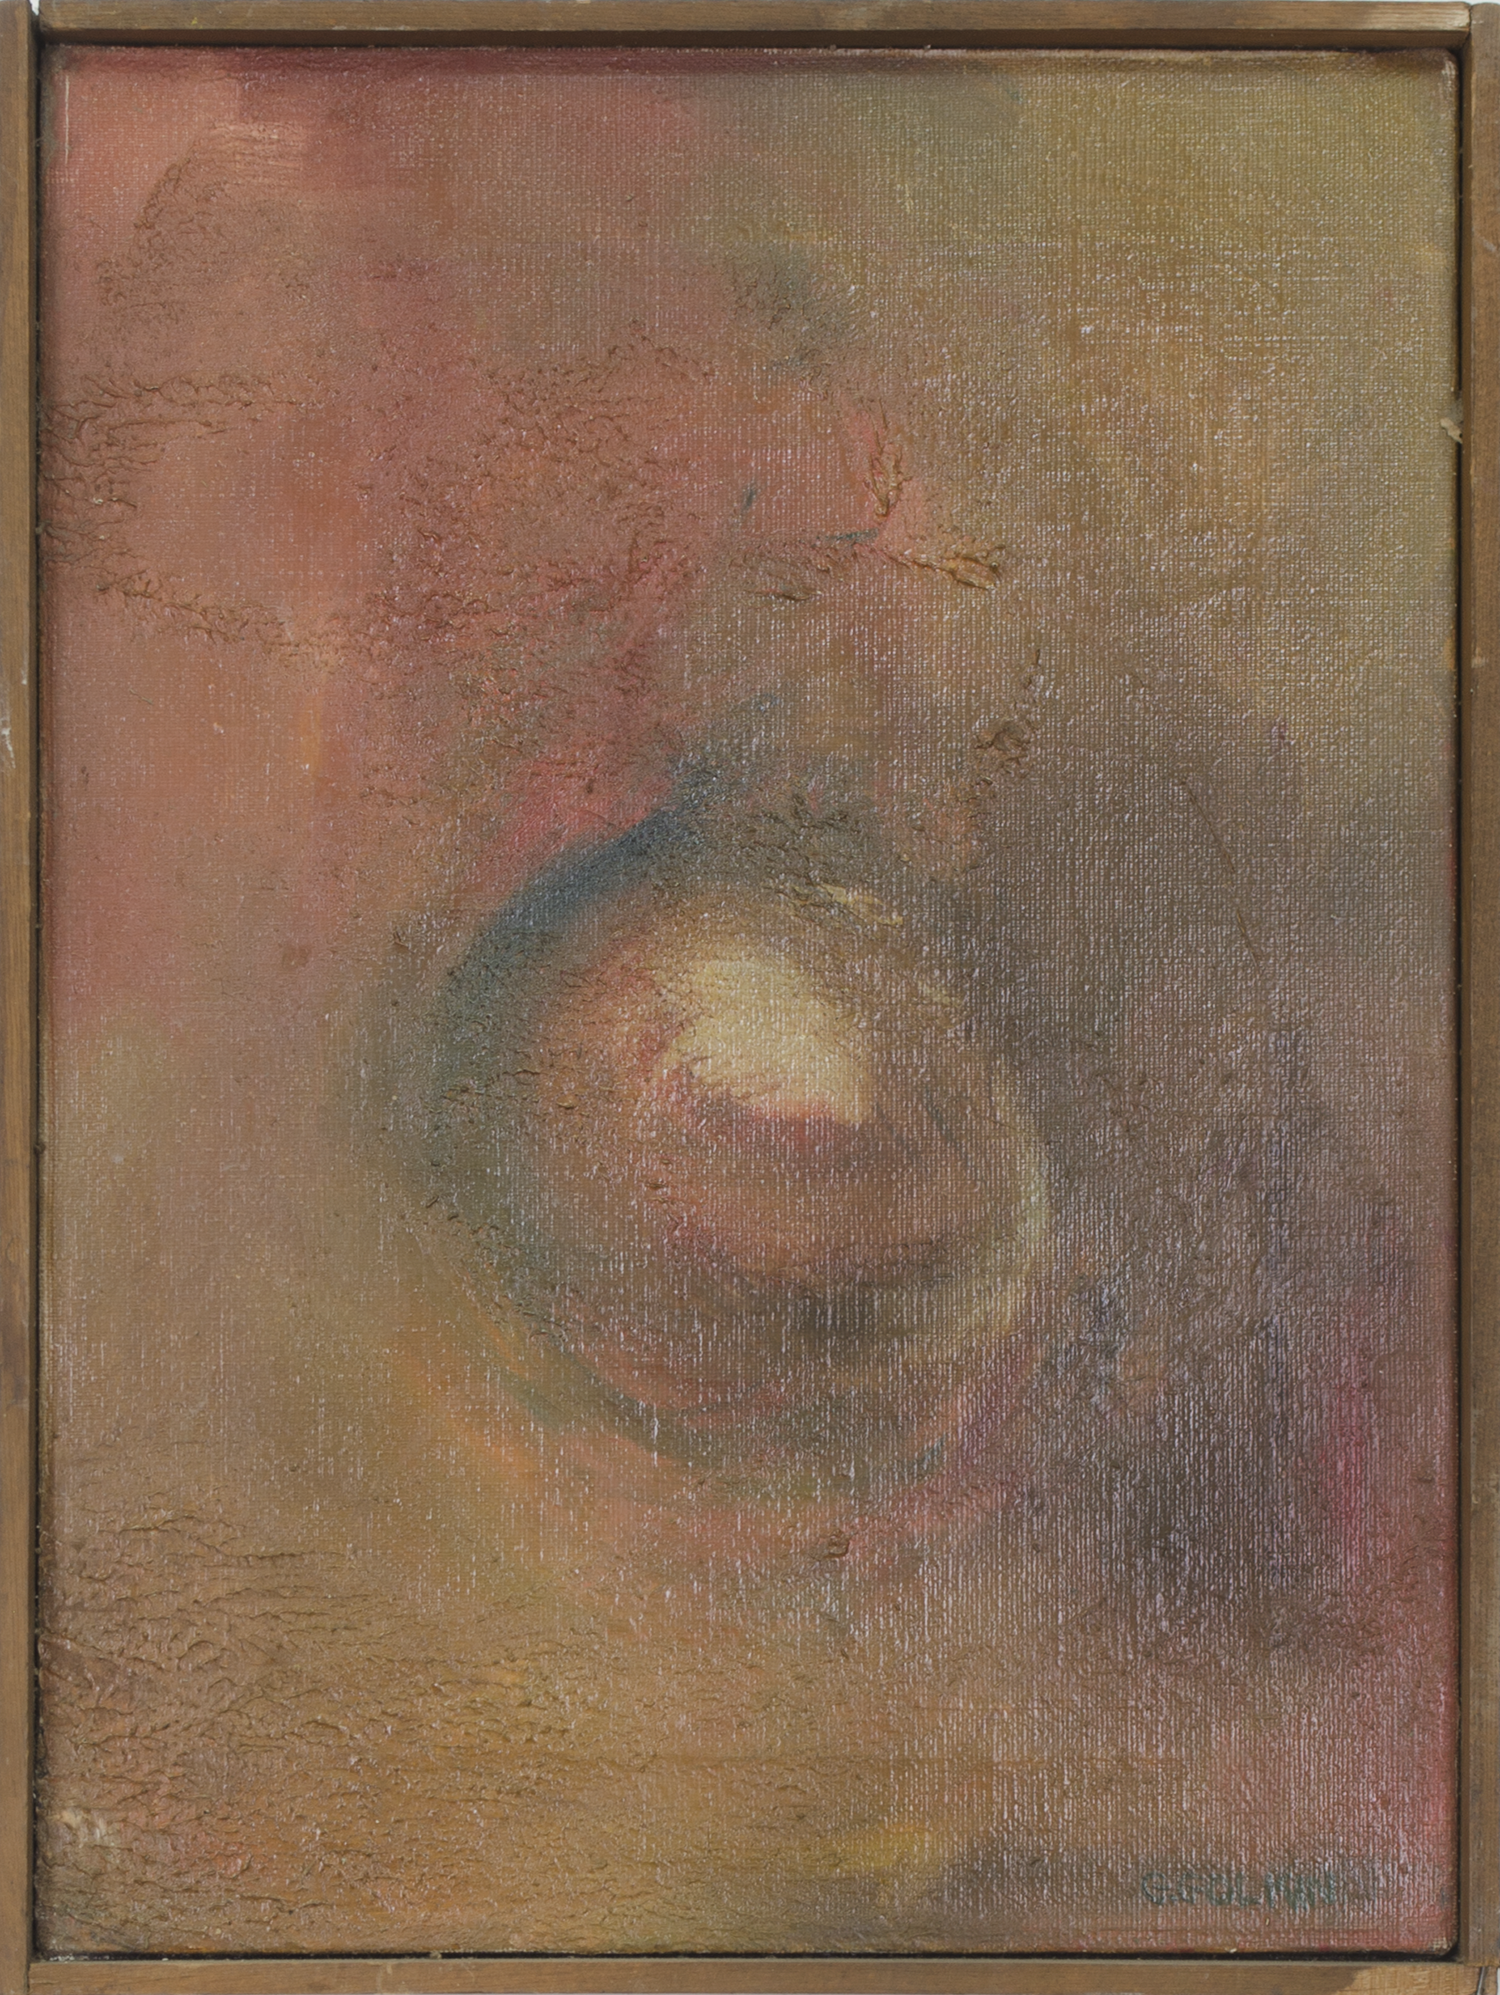 "FIRST 1959  12"" X 16""   OIL ON CANVAS"